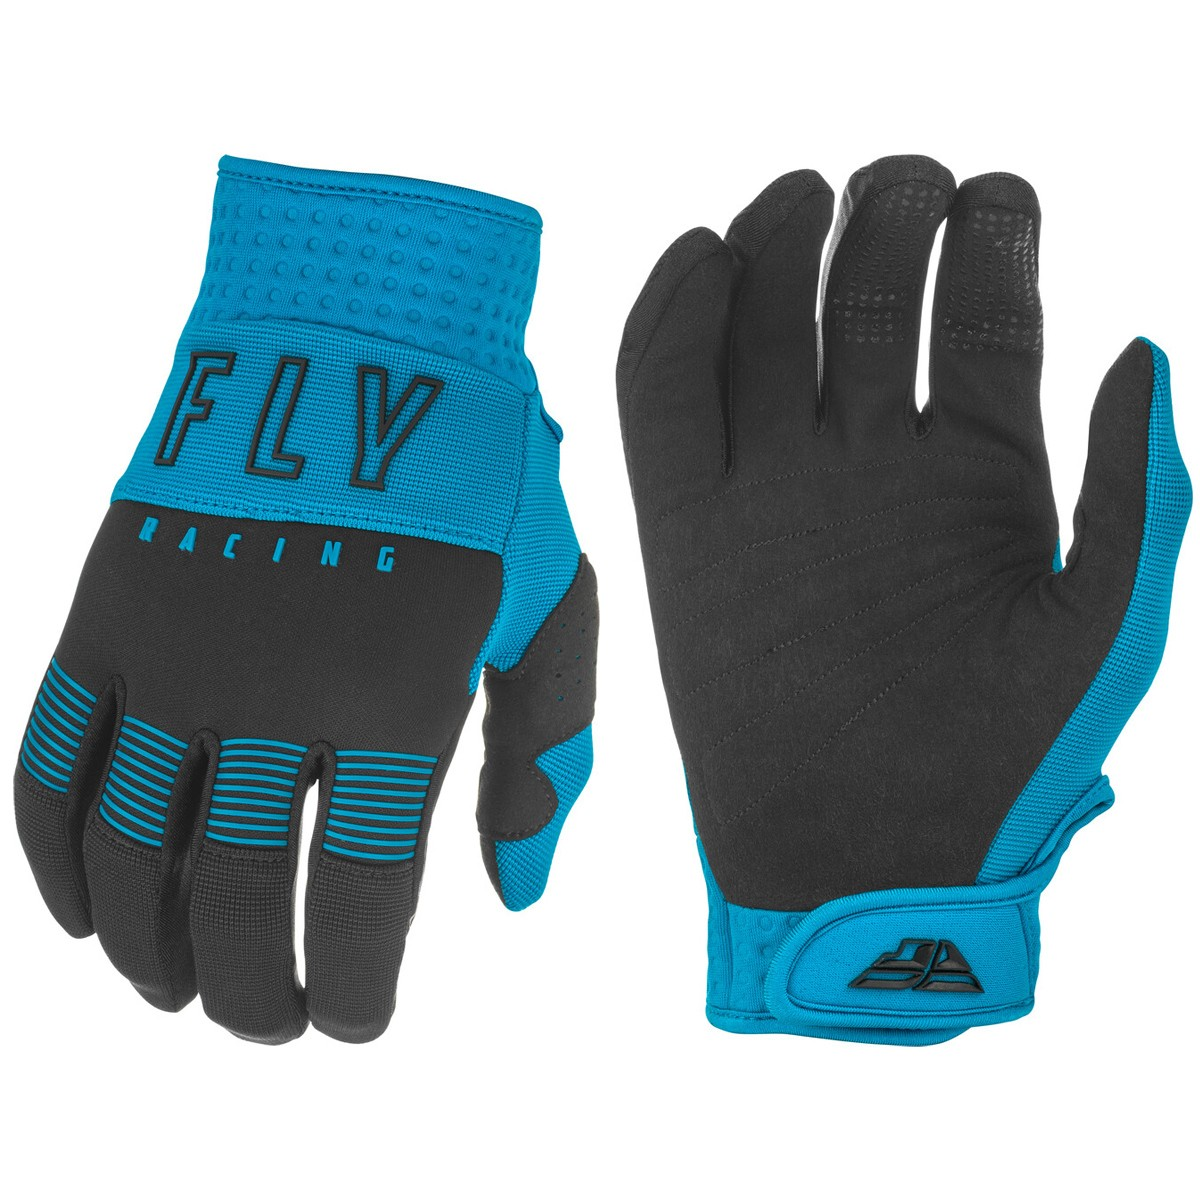 FLY F-16 2021 GLOVES